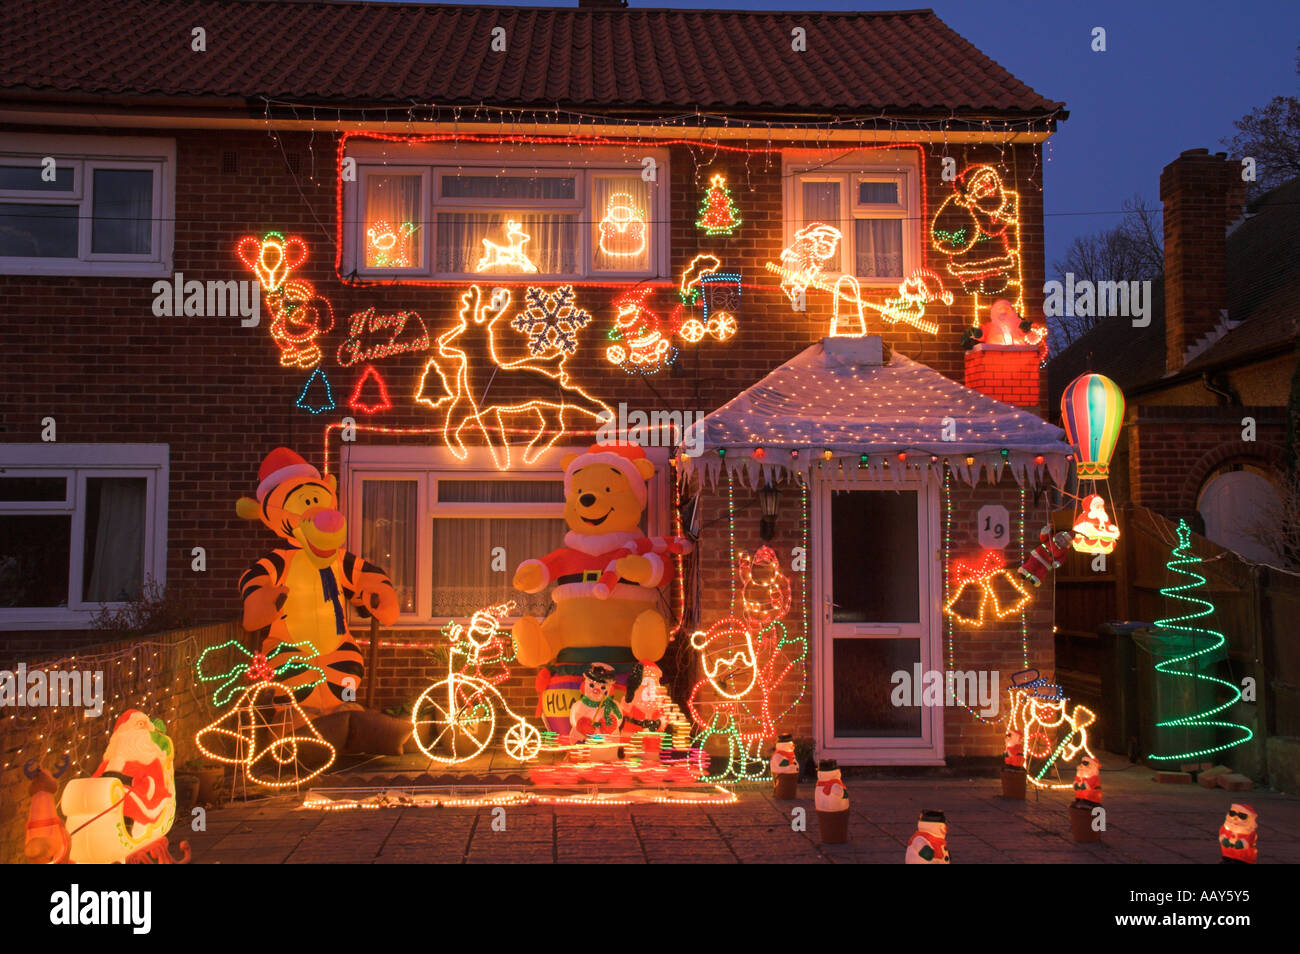 house with christmas decorations on house - Stock Image